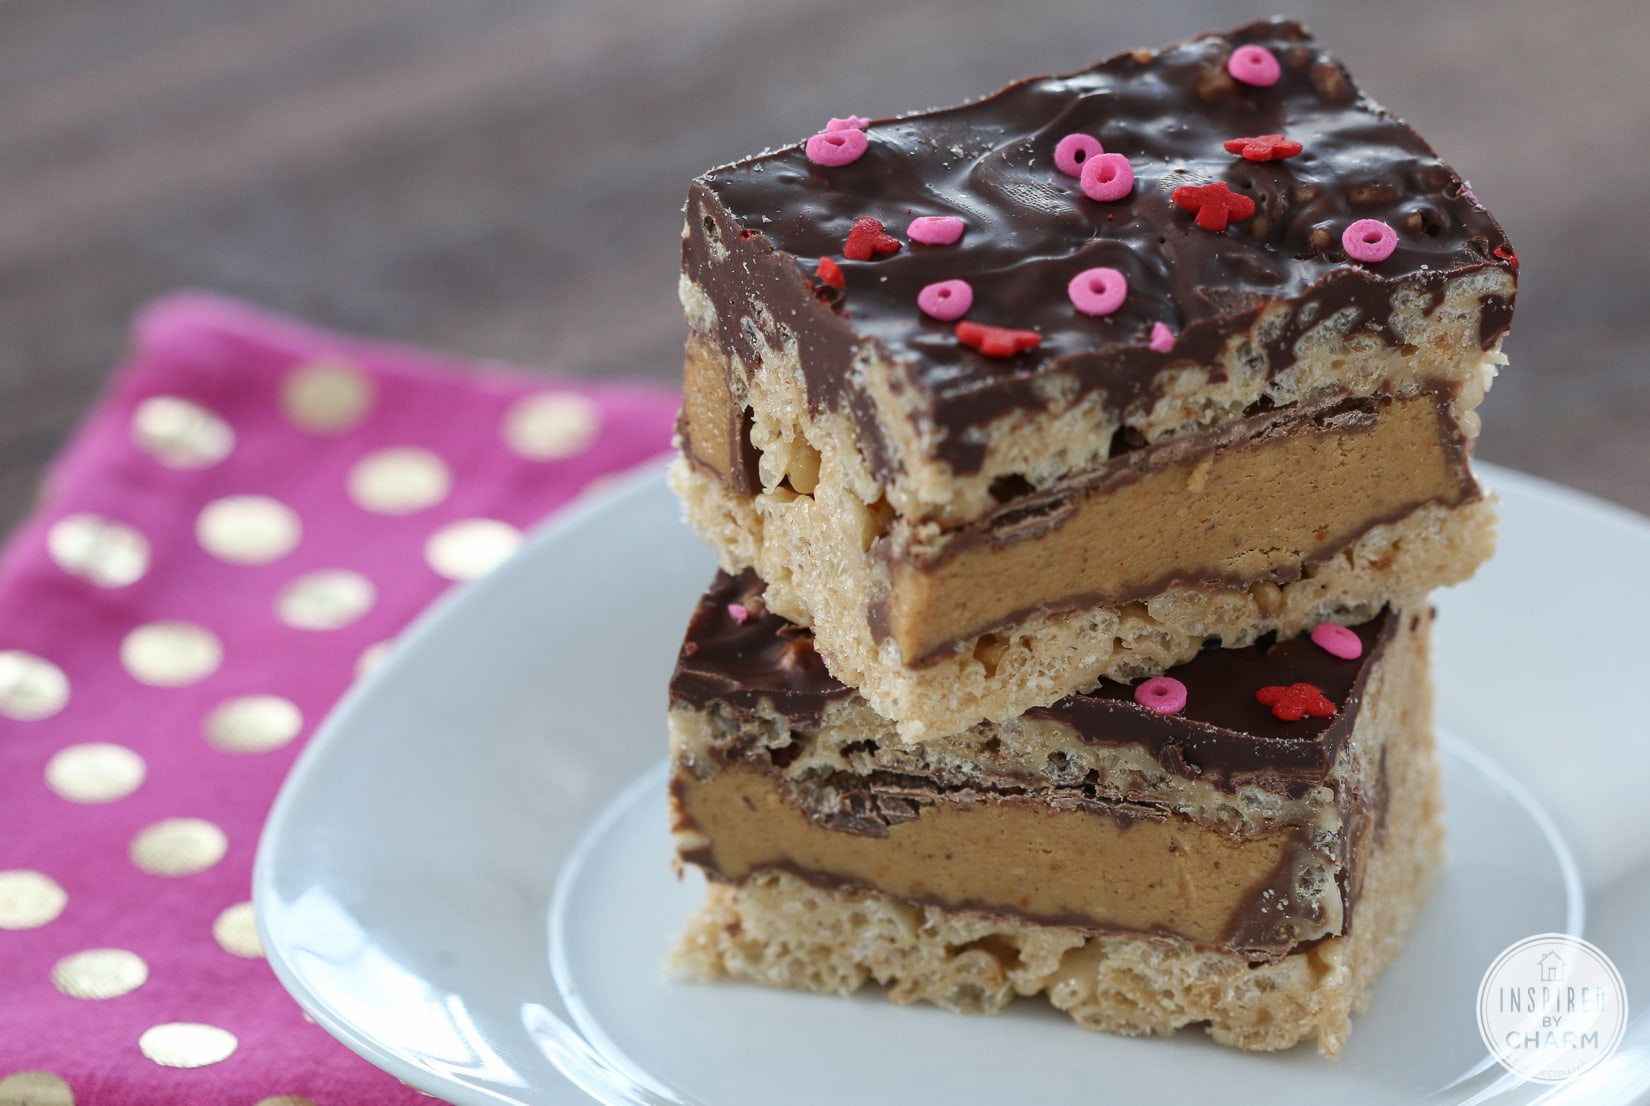 Peanut Butter Cup Rice Krispies Treats | Inspired by Charm